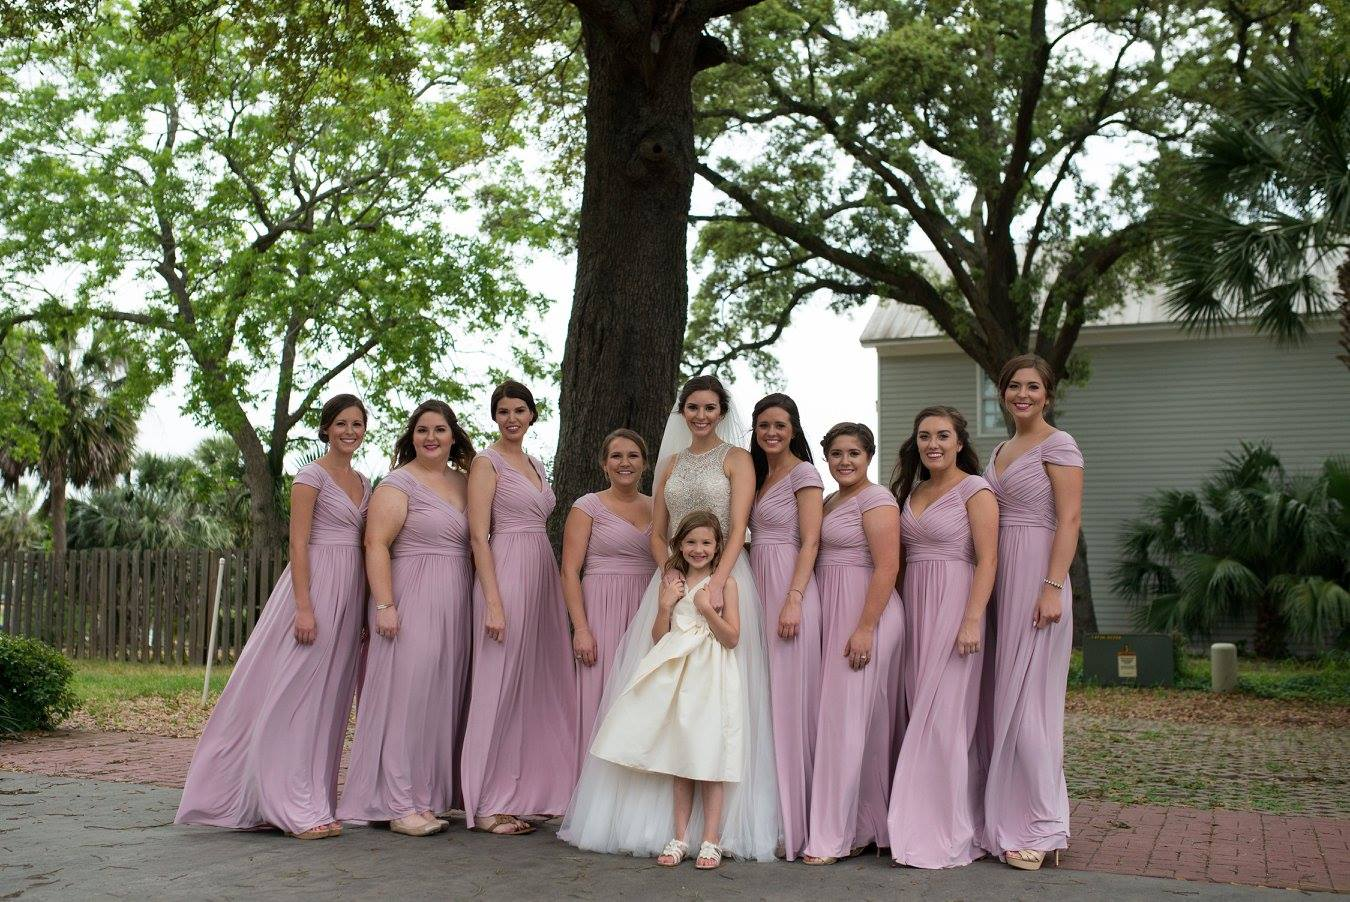 The Bride with her bridesmaids and flower girls